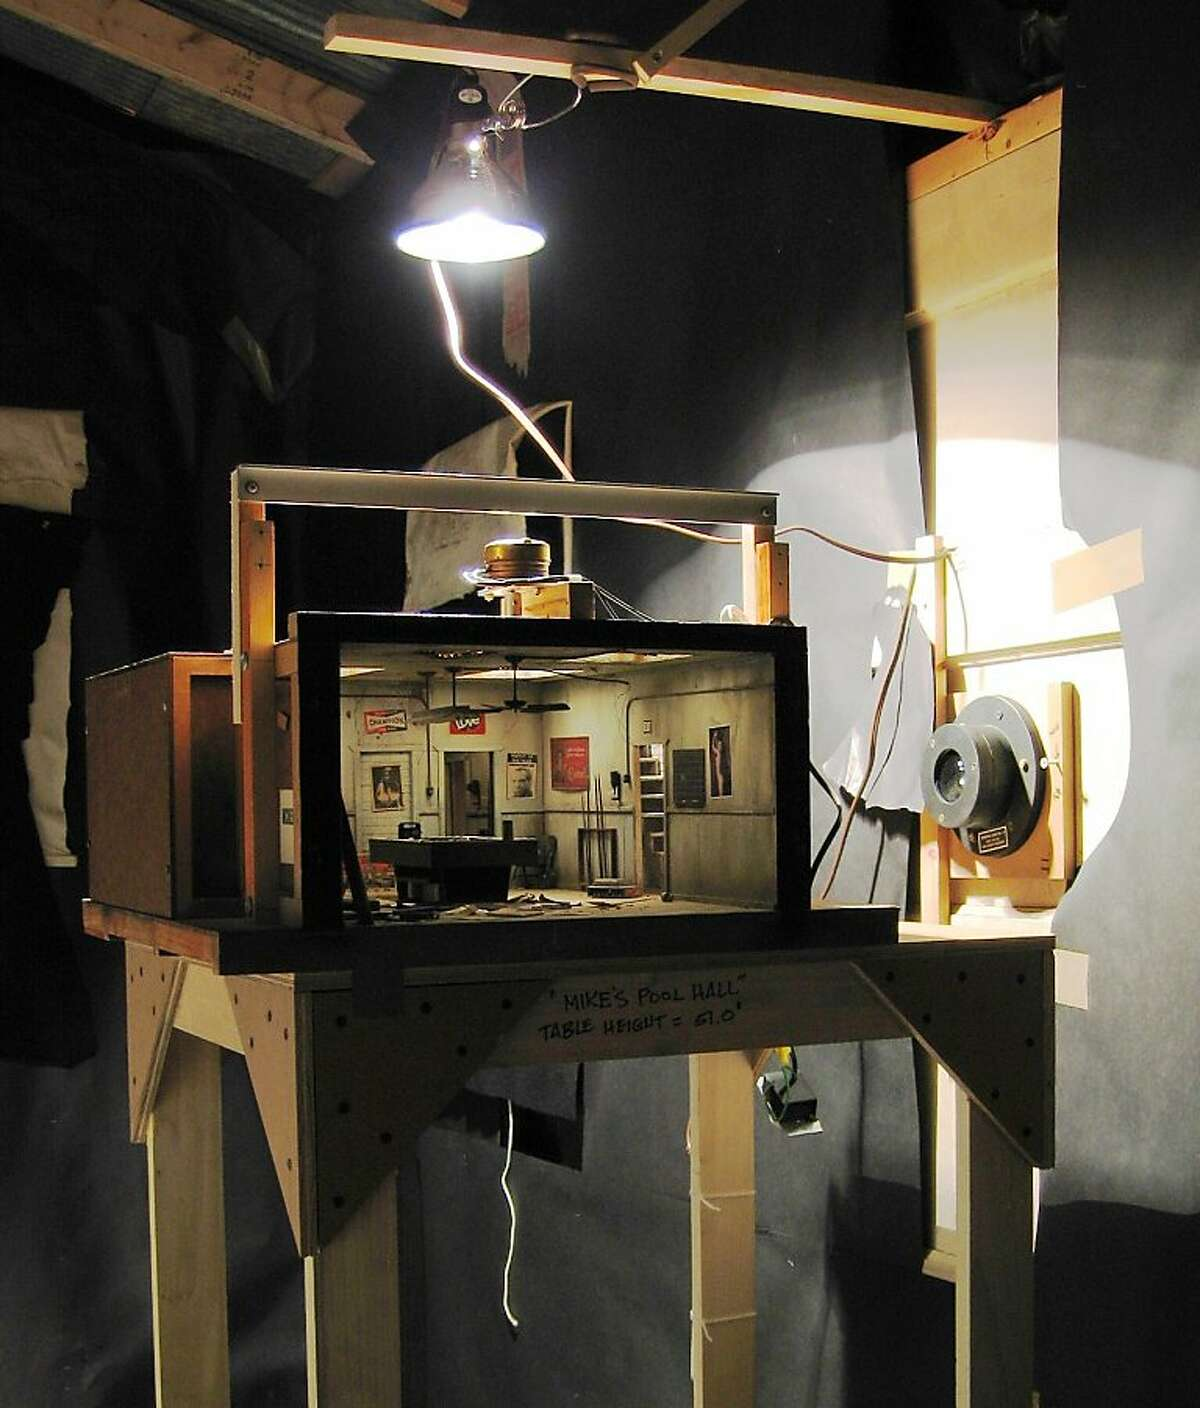 """Installation (side) view of miniature diorama """"Mike's Pool Hall"""" (1977), mixed media, made to be viewed through a security peephole by Michael McMillen"""